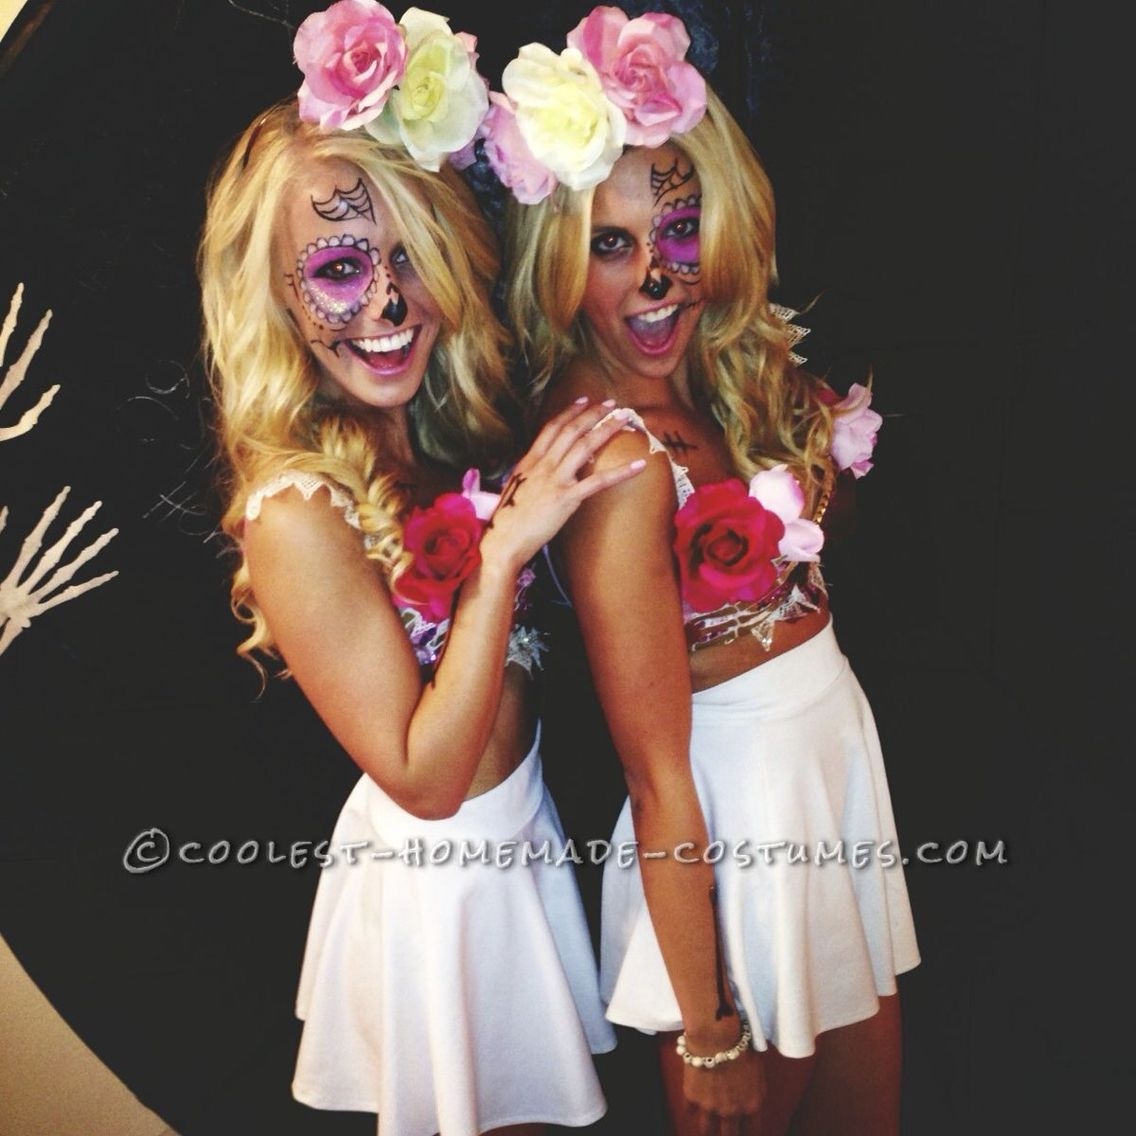 Halloween Costumes Ideas For This Sugar Skulls Cross Bone Blondes I Started With The Top Bra Went To Michaels And Got Fake Flowers In